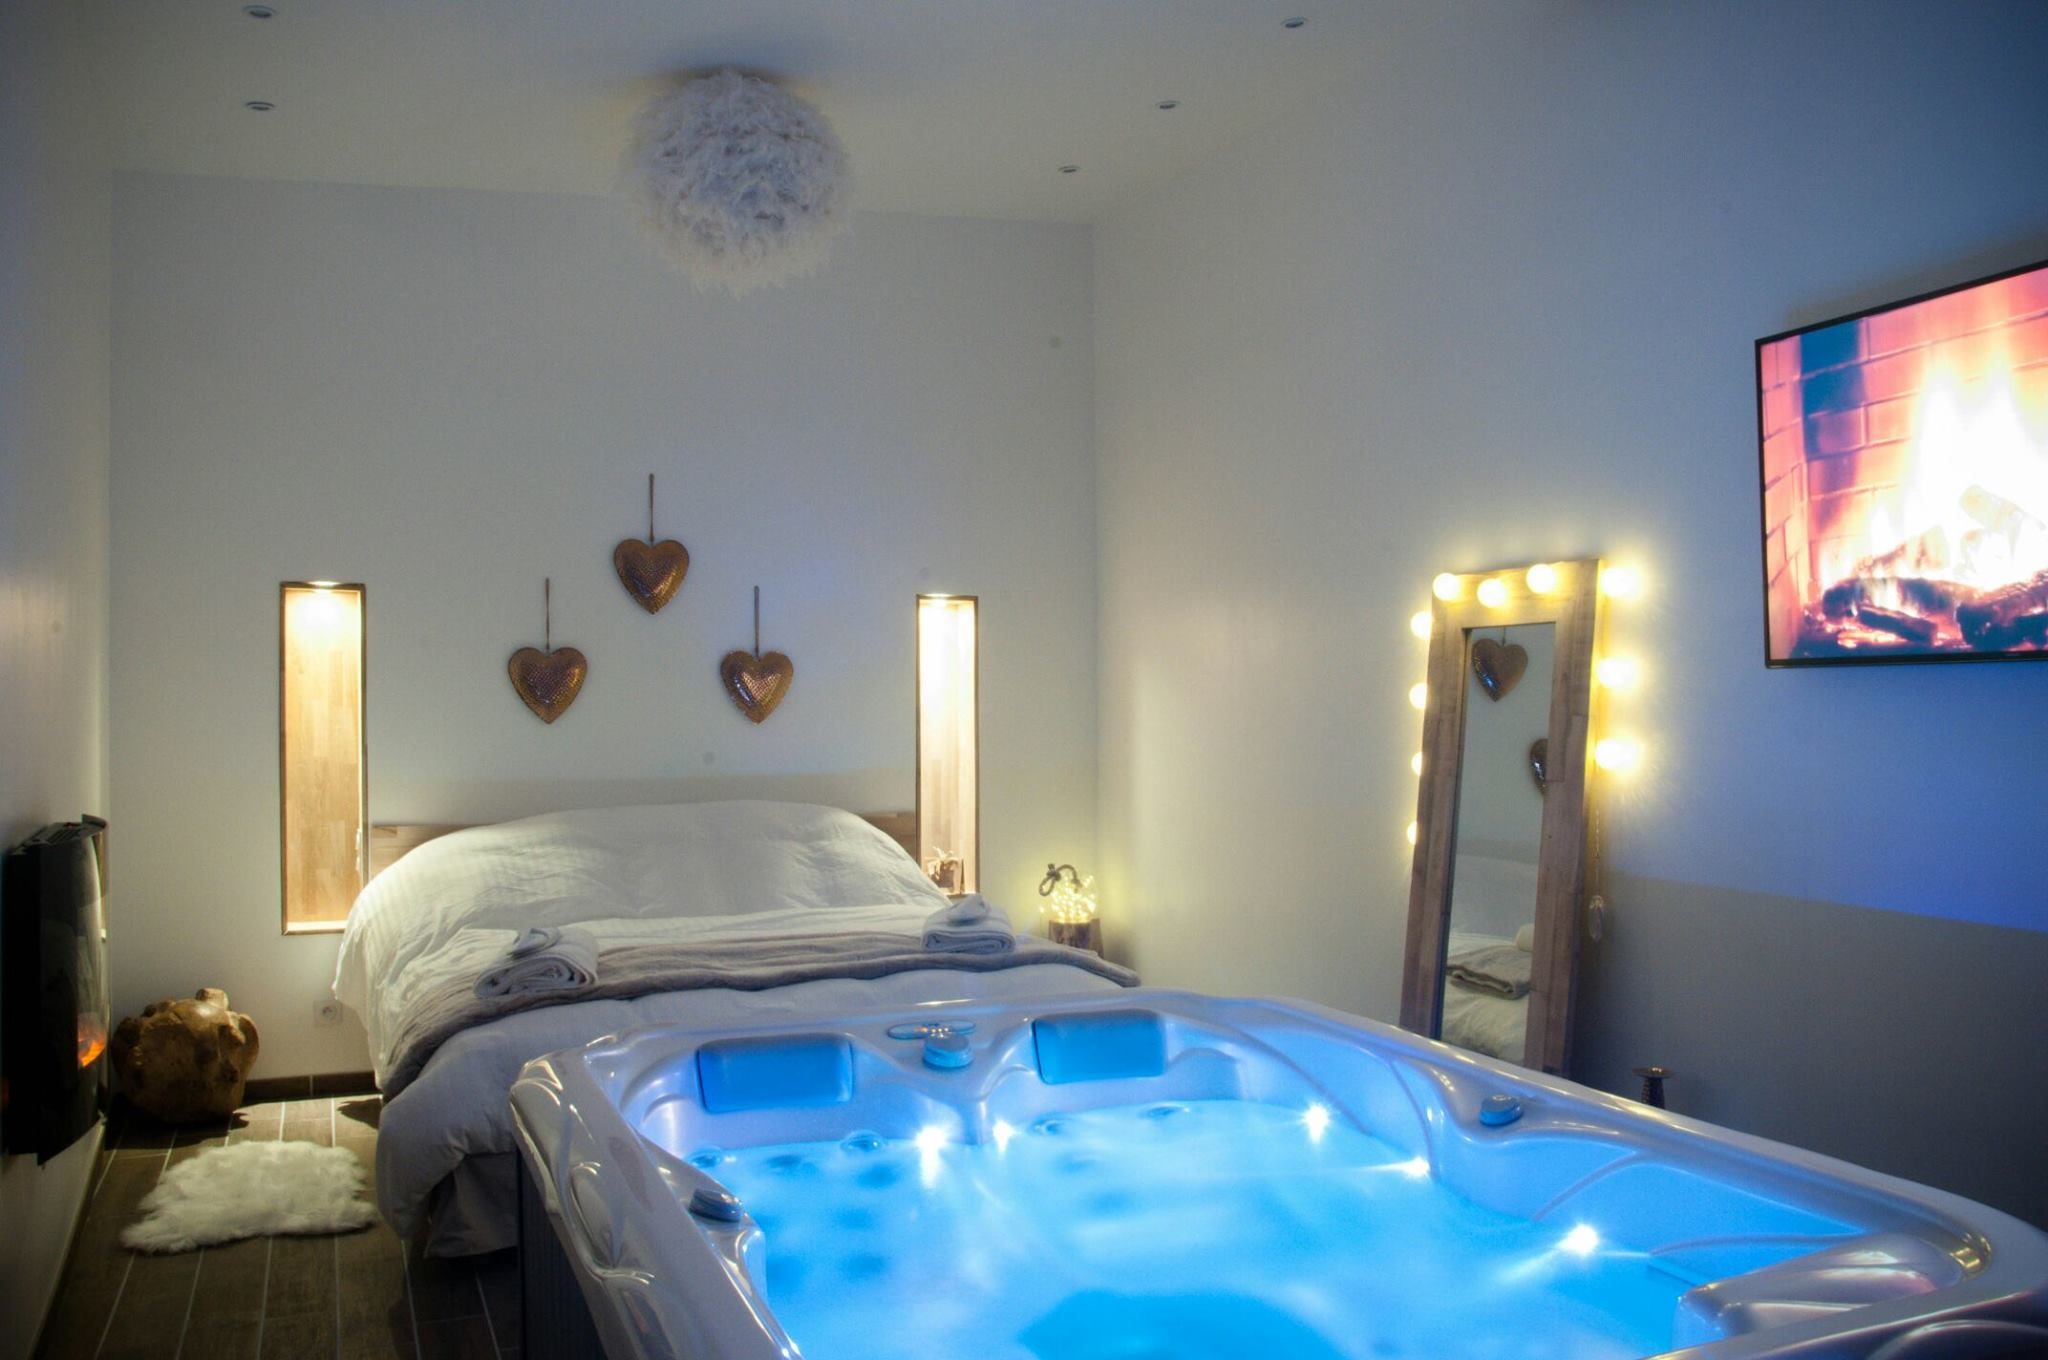 Hotel Chambre Spa Privatif Rect Hotels Jacuzzi Hotel Du With